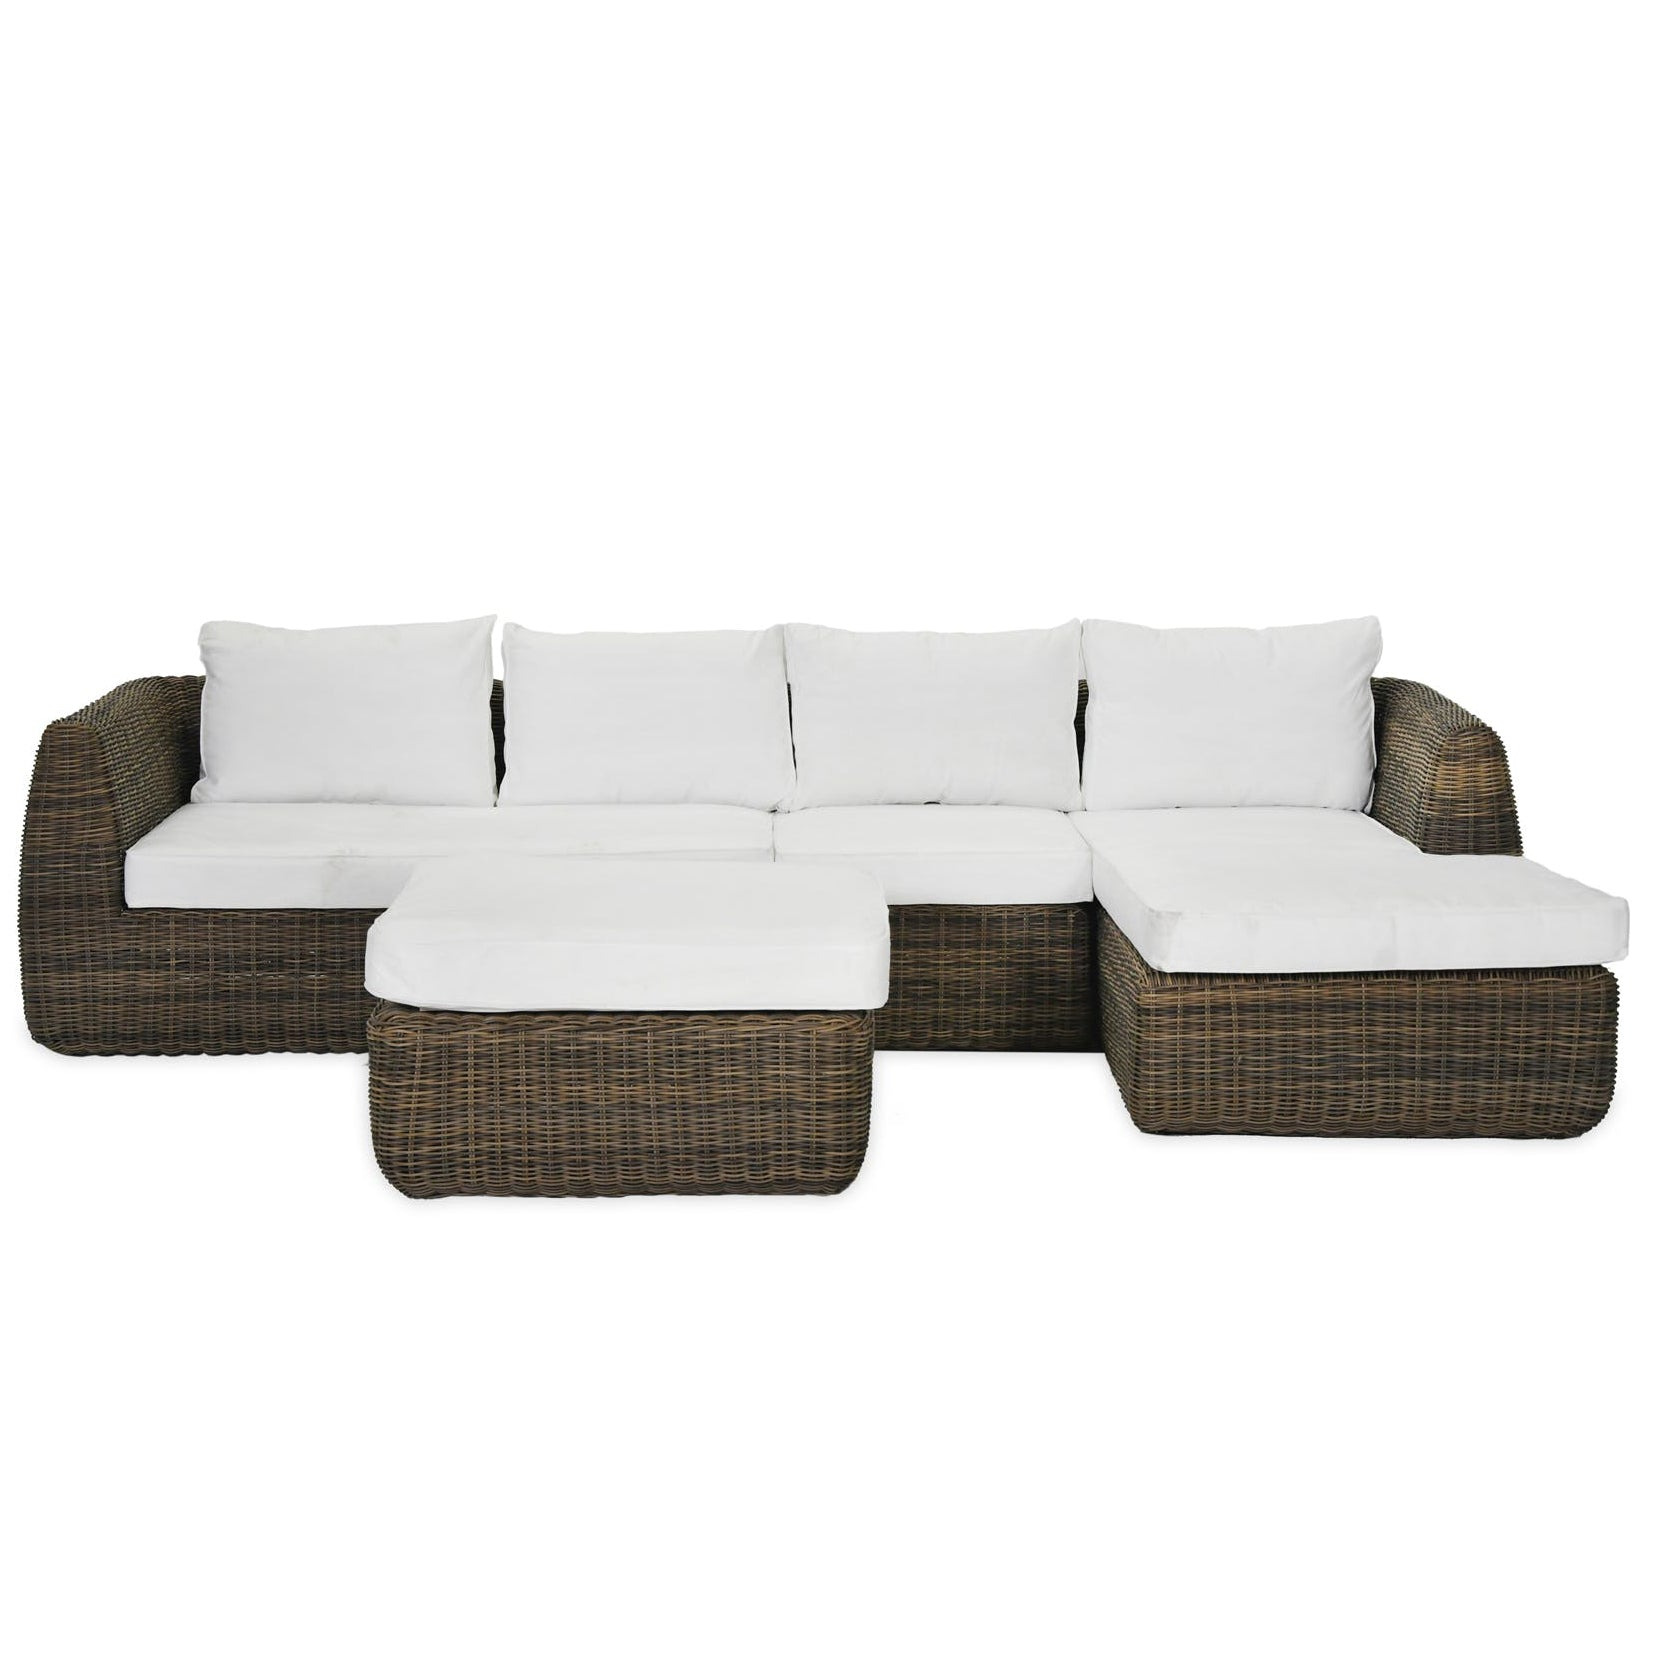 Sofa-Set SCALA